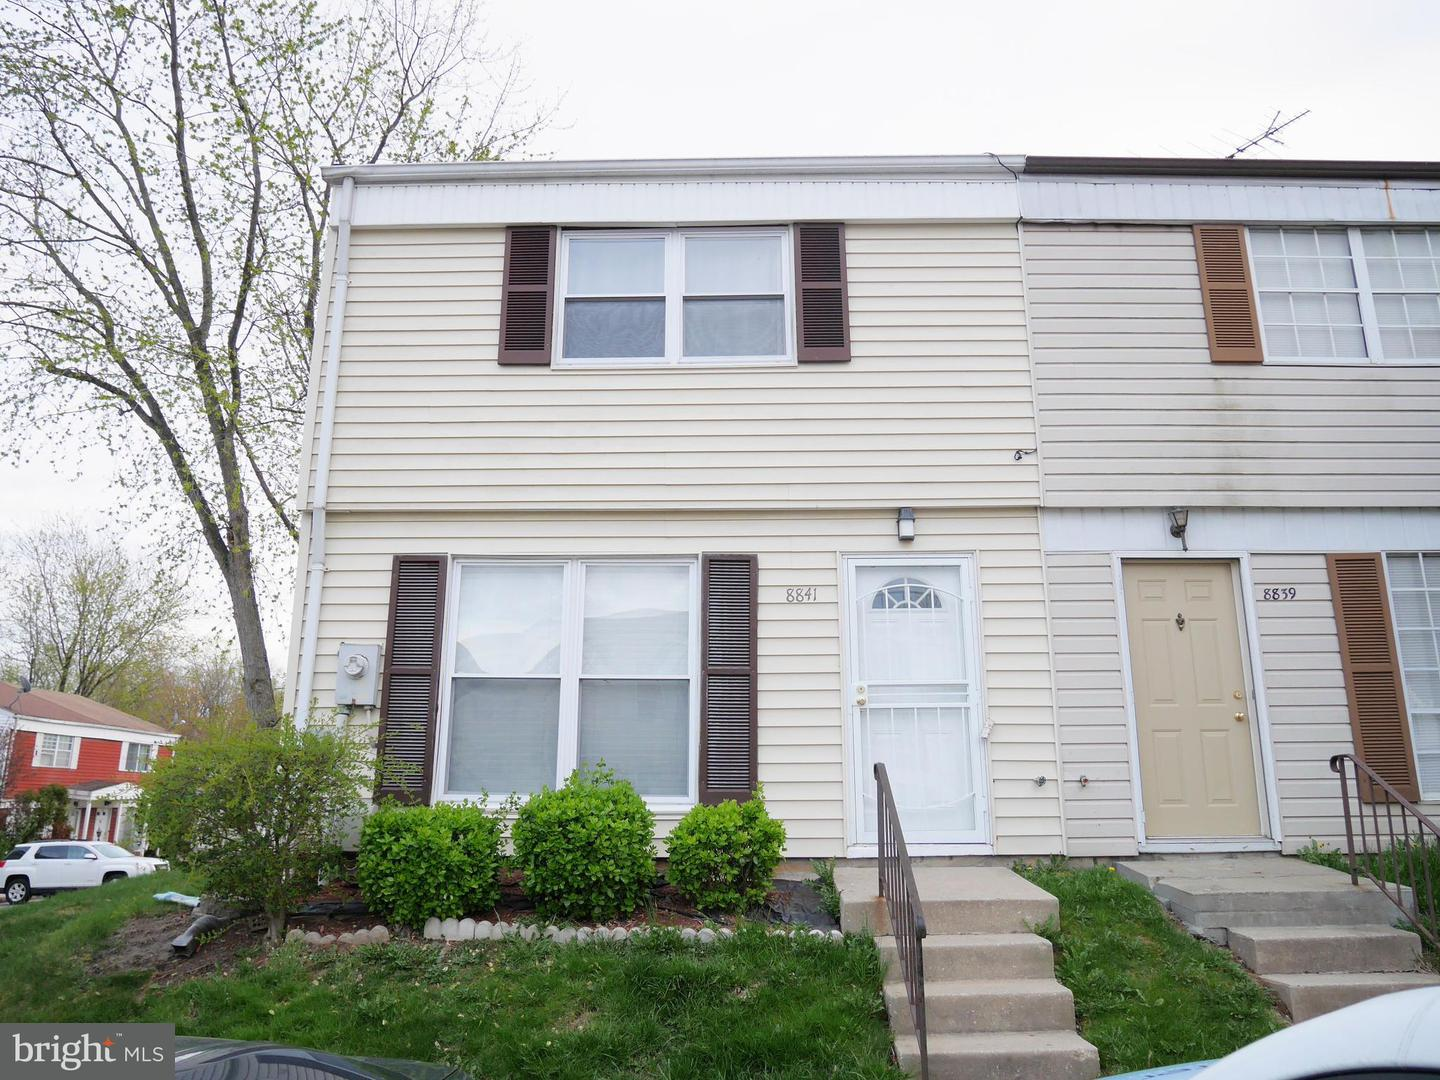 Other Residential for Rent at 8841 Pennsbury Pl Rosedale, Maryland 21237 United States